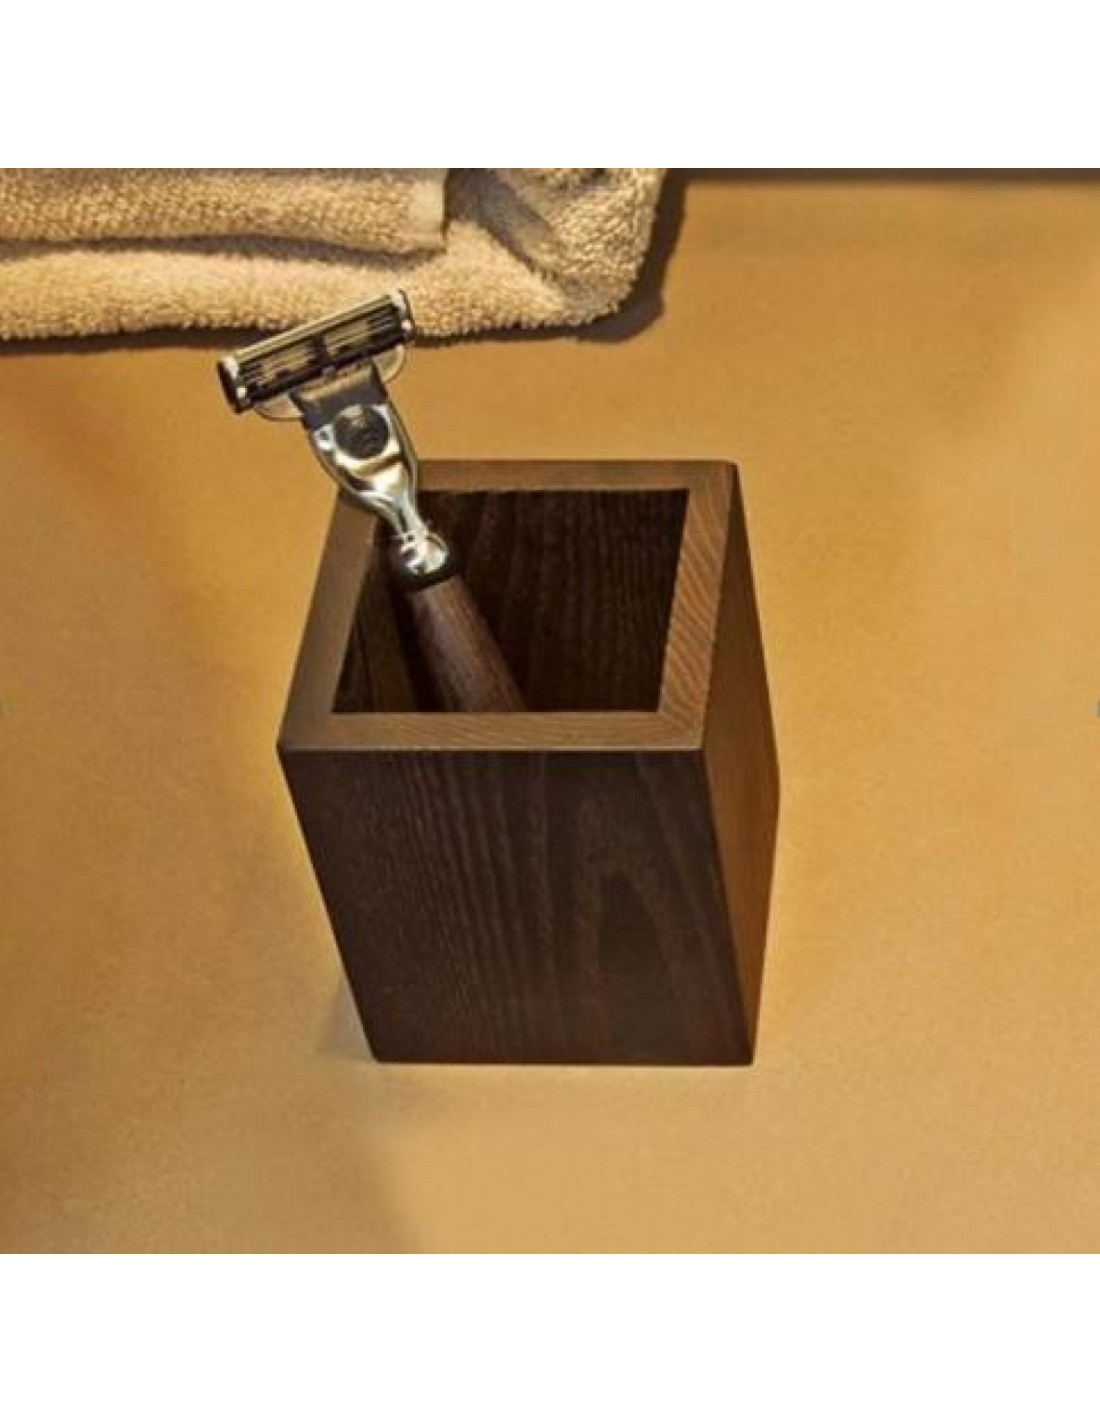 Verre wood bois decor walther en fr ne thermo huil fonc for Decor walther salle de bain